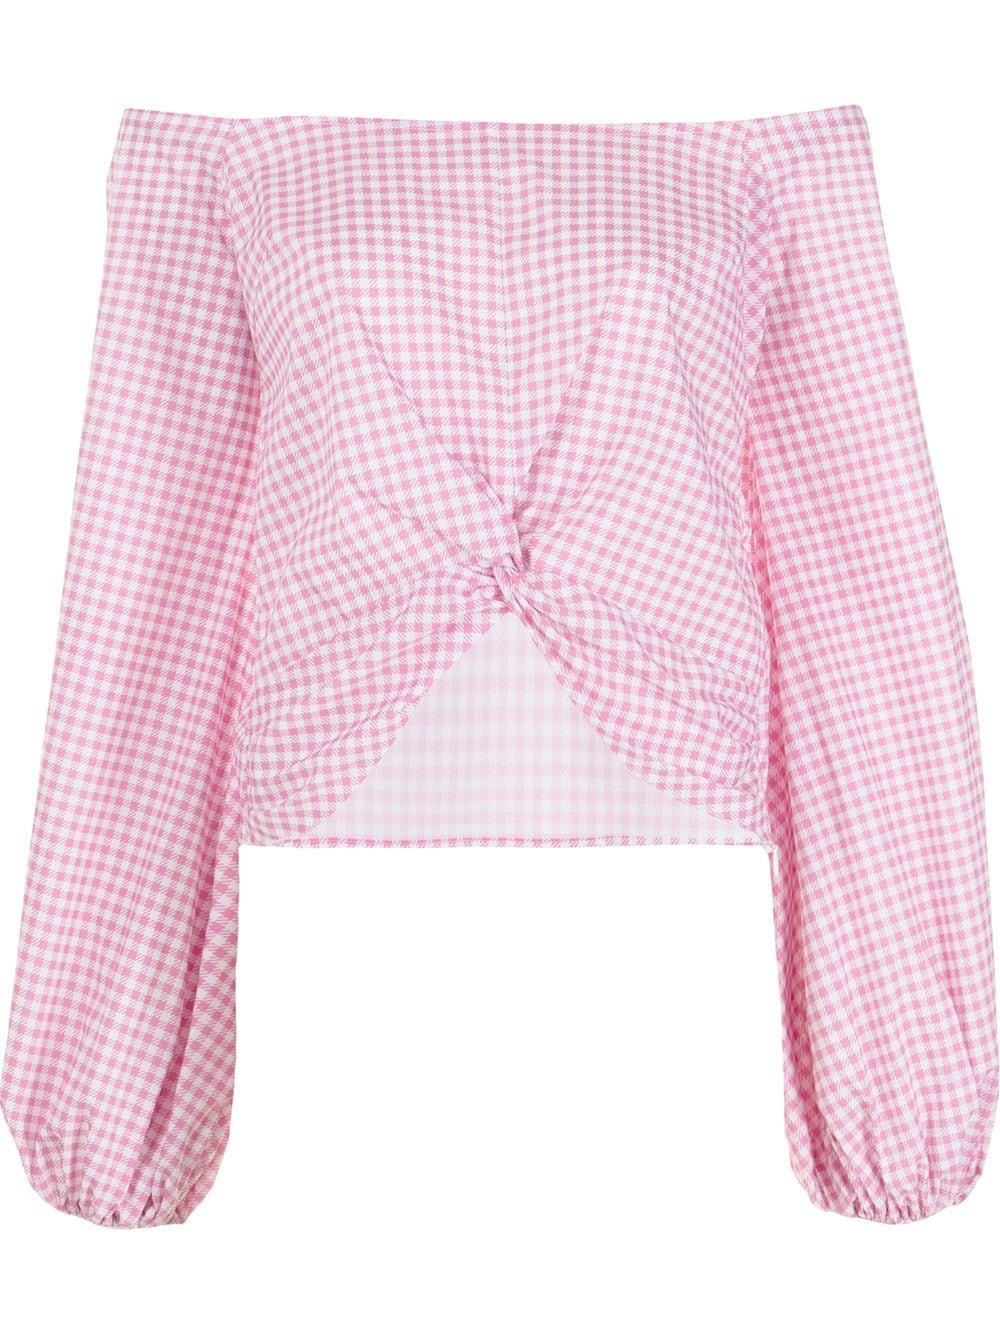 Maddie Gingham Off Shoulder Top Item # T415GPSS21-C